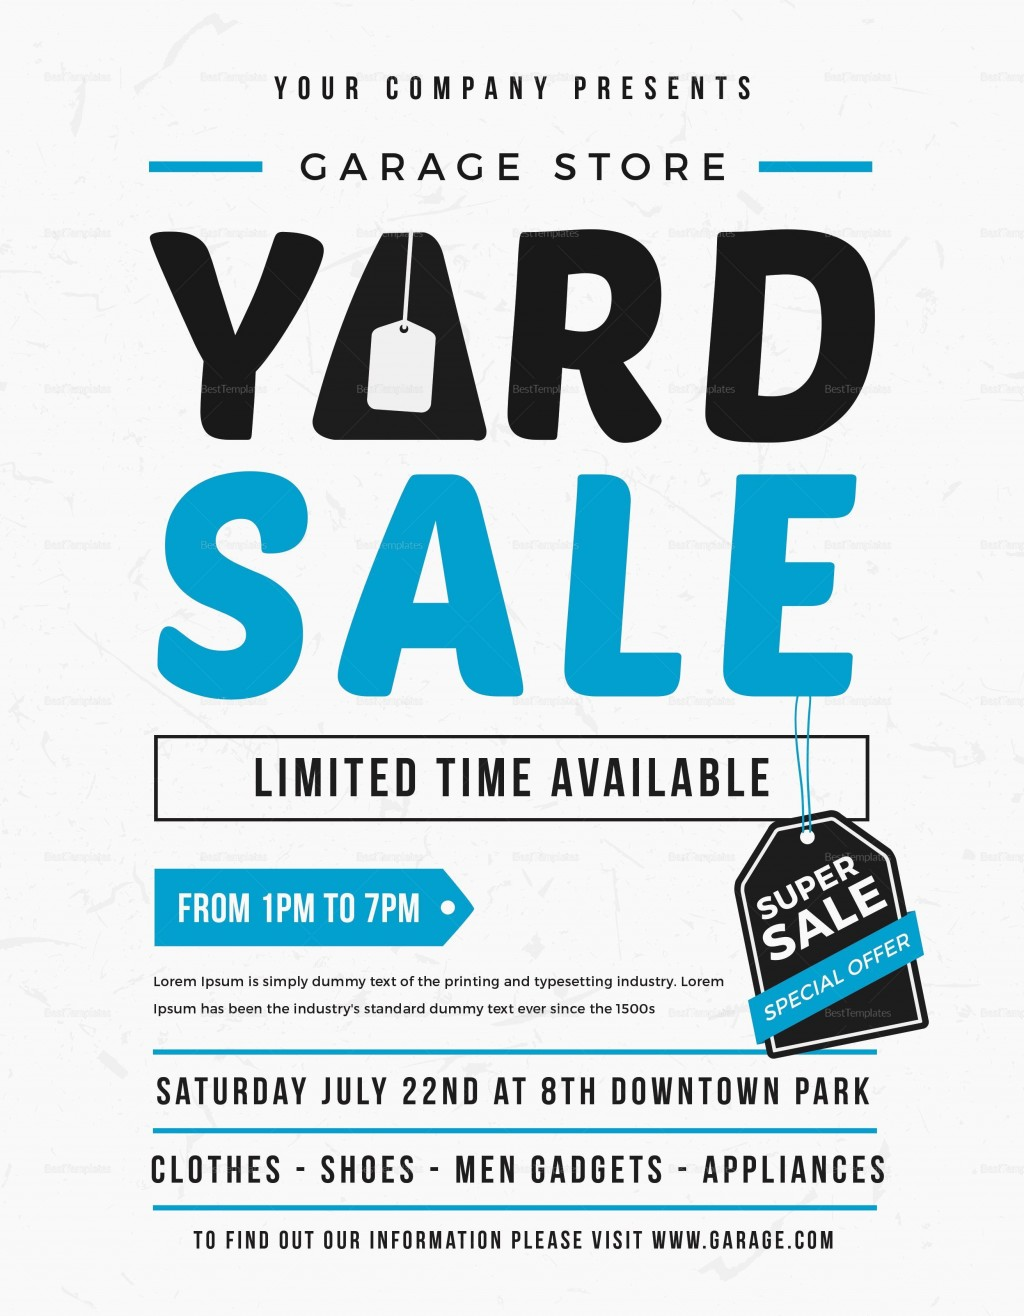 005 Impressive Yard Sale Flyer Template Design  Free Garage Microsoft WordLarge